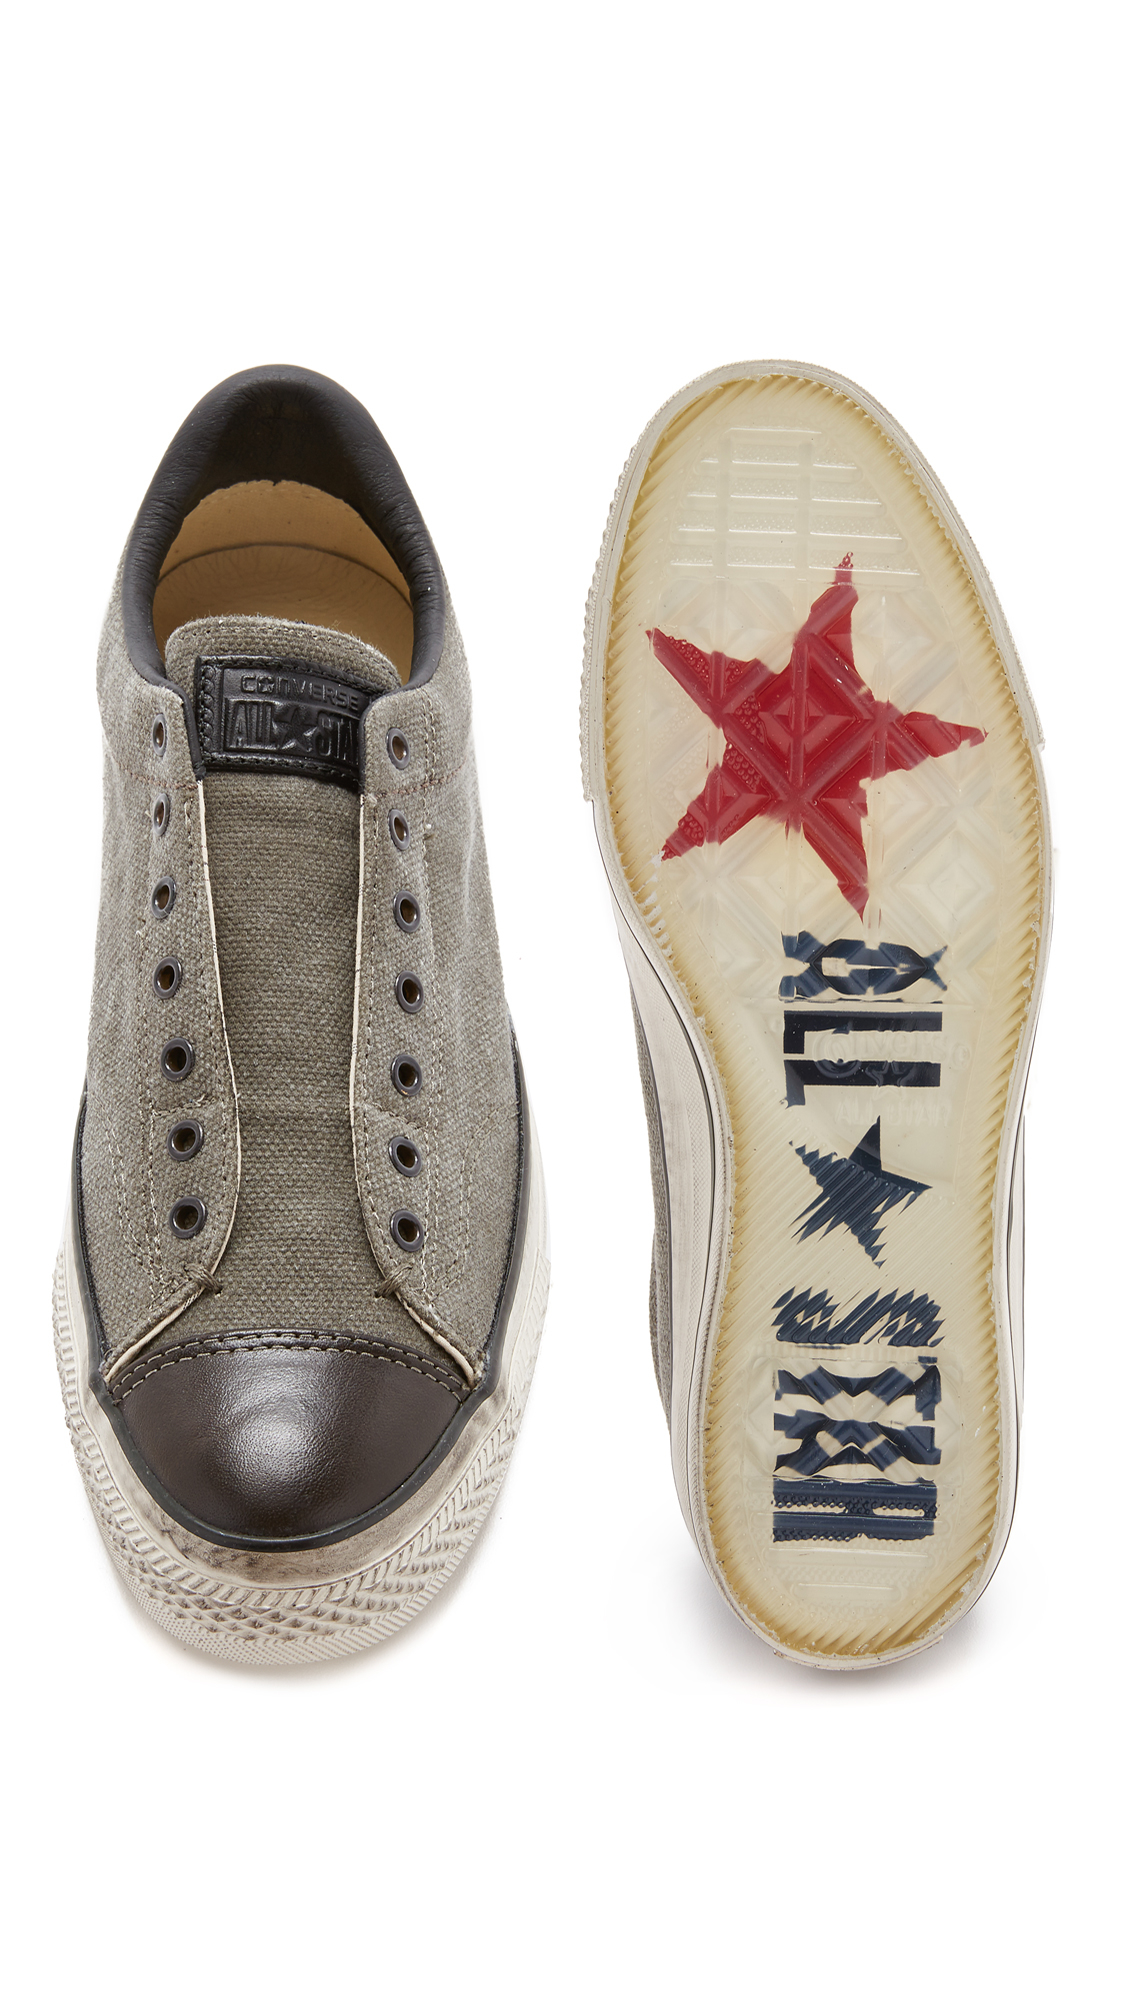 1dc8631f428532 ... x john varvatos 906f6 e98b3  ireland lyst converse chuck taylor all star  vintage slip on sneakers in black for men 8c4be